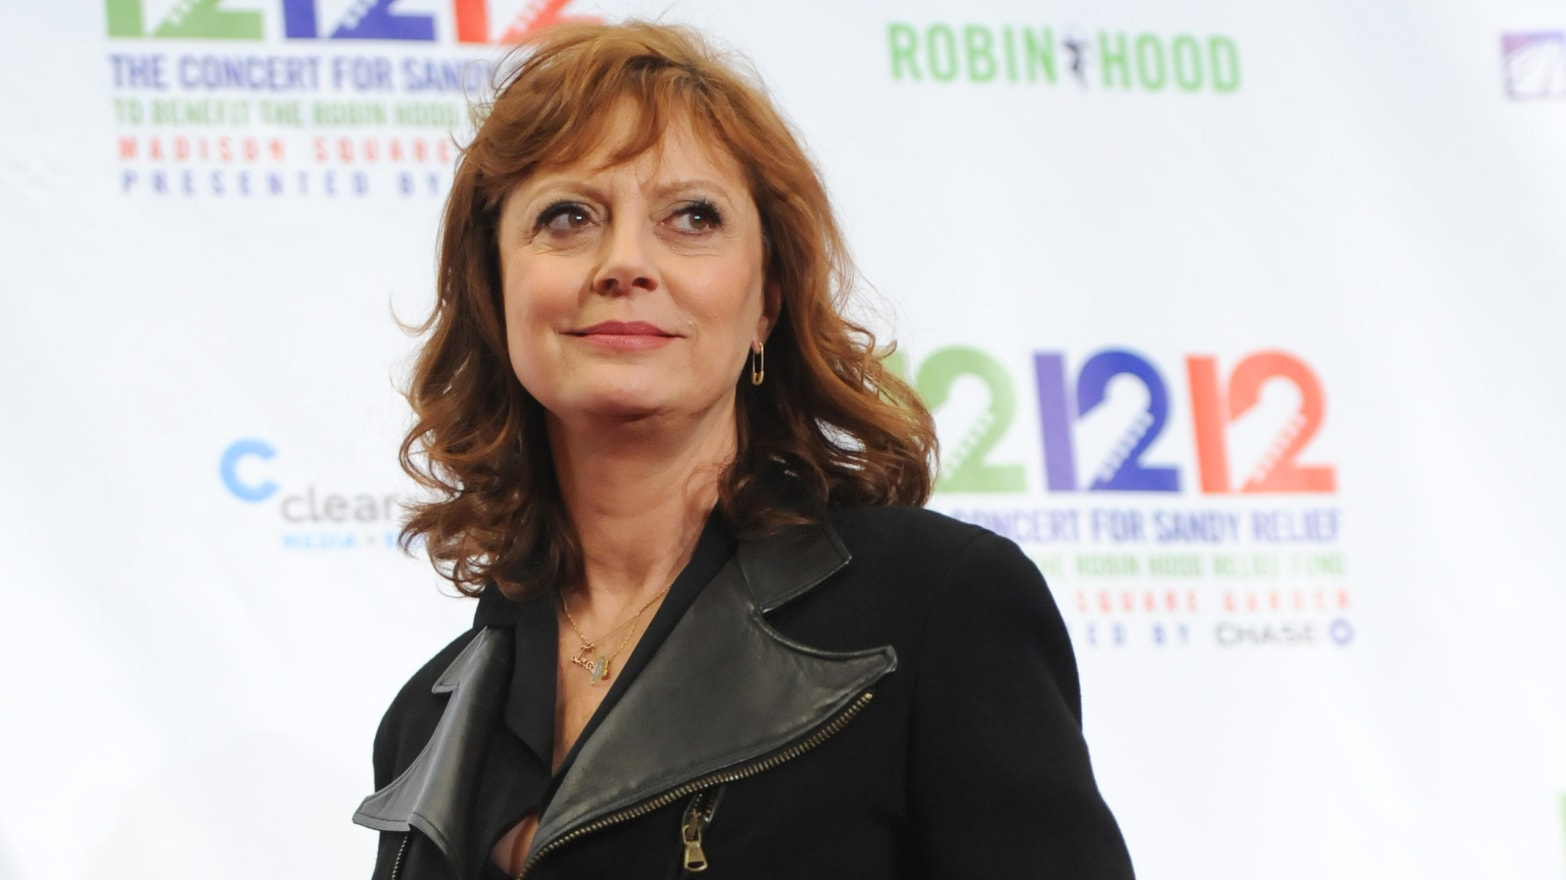 Susan Sarandon Says She's Not a Feminist: Why She Dumped the Label